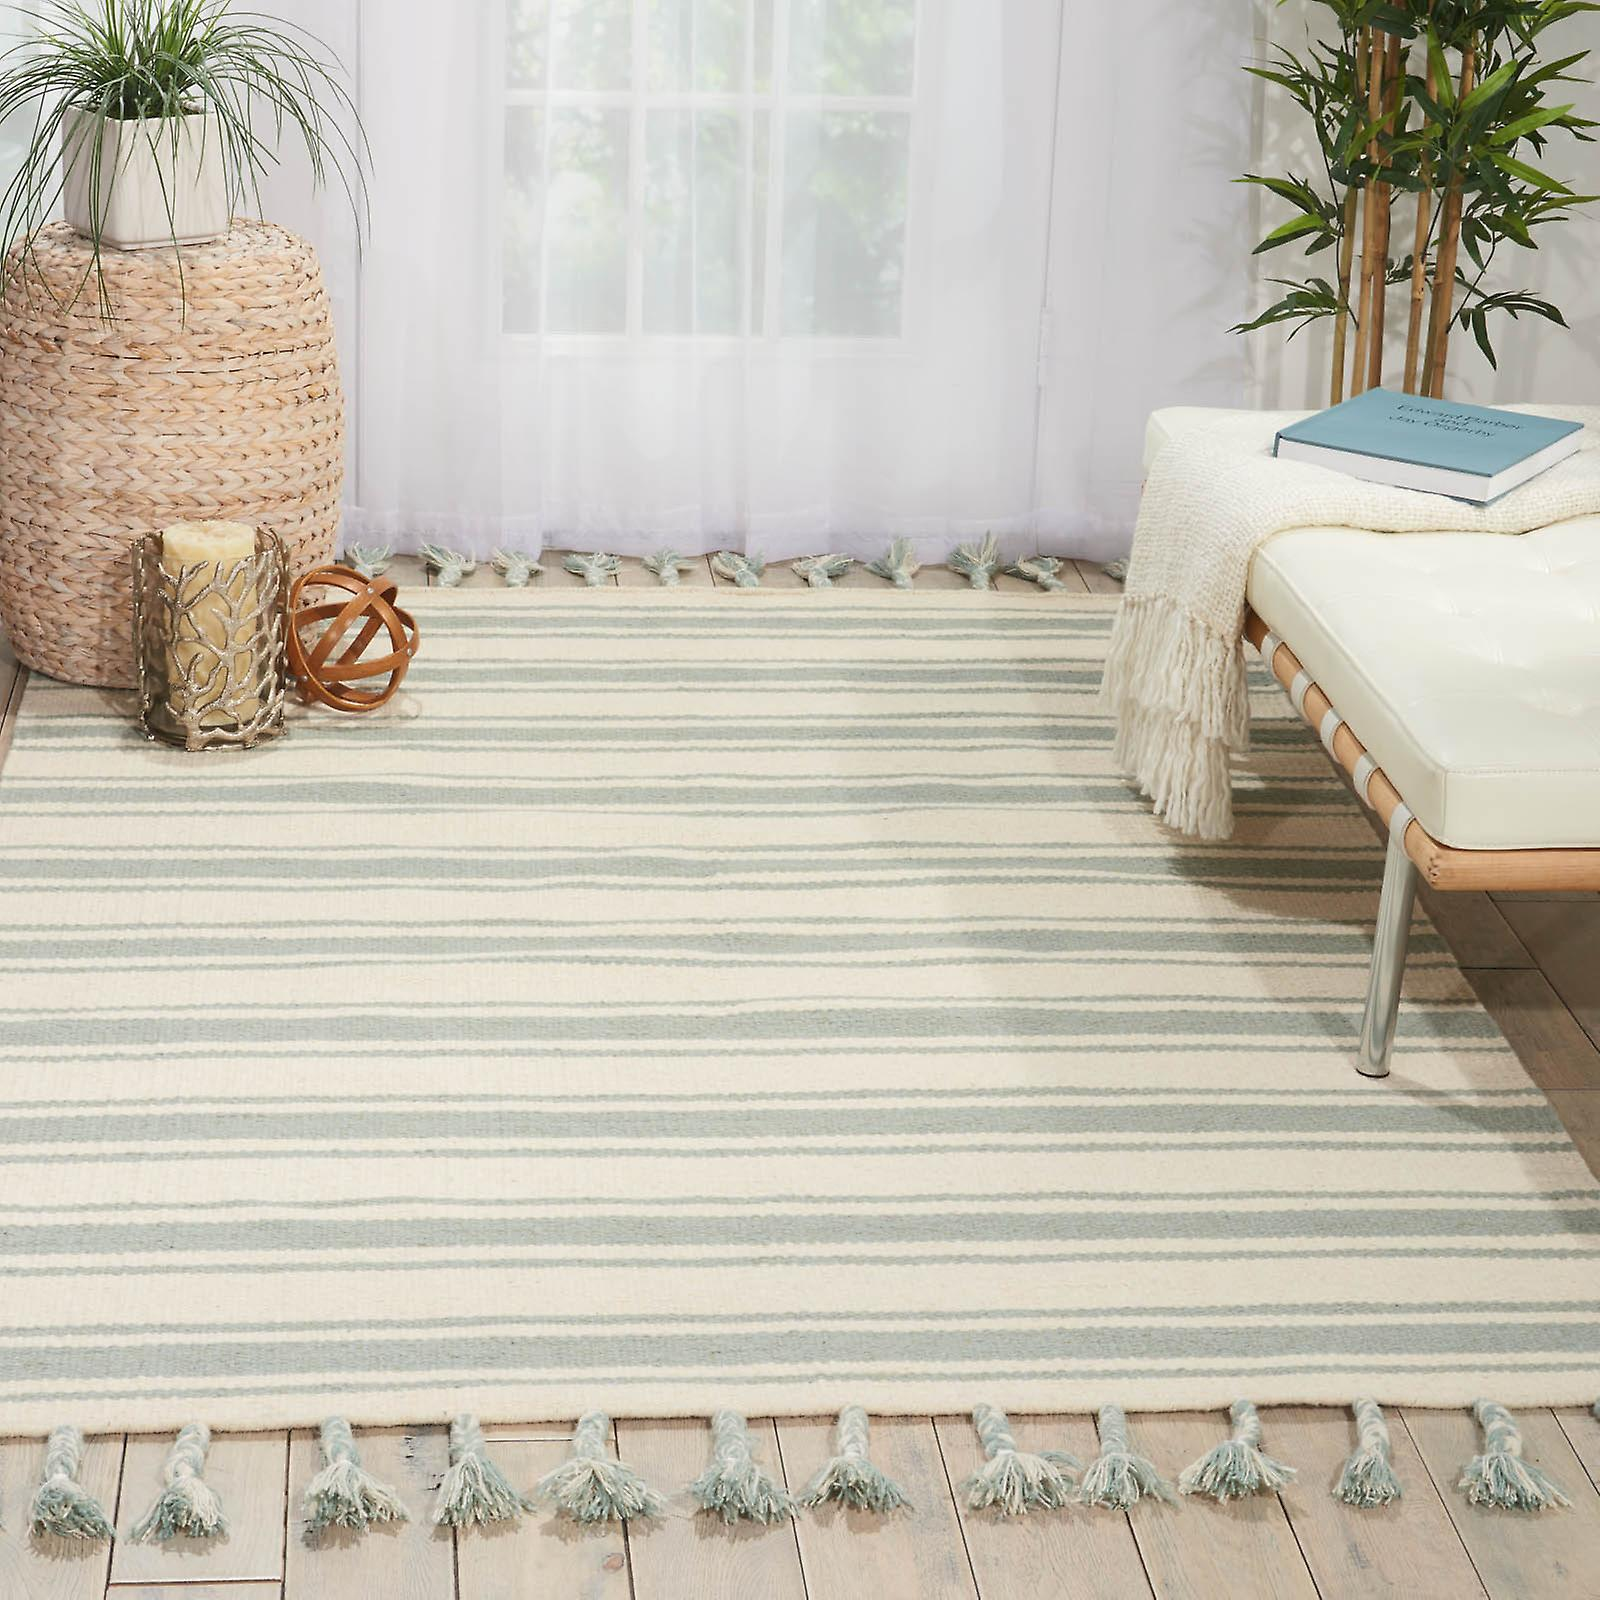 Rio Vista Rugs Dst01 In Ivory And